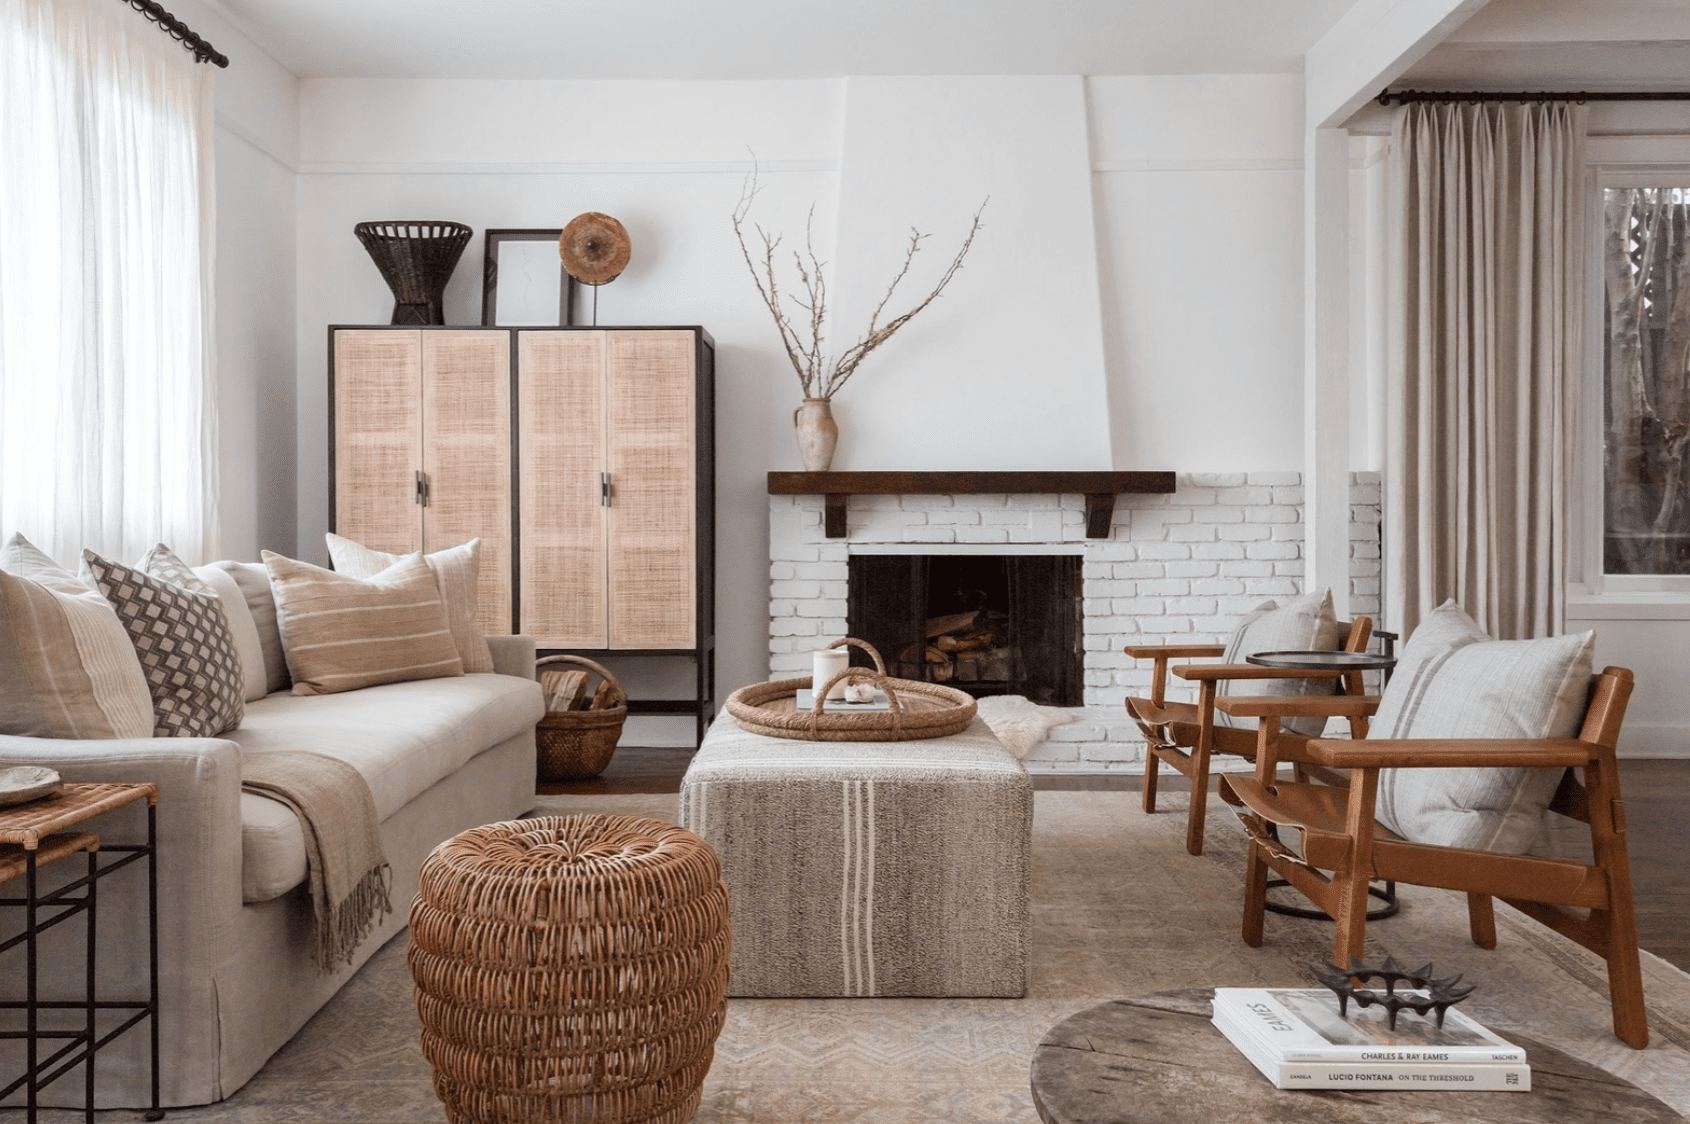 Living room with neutral color scheme